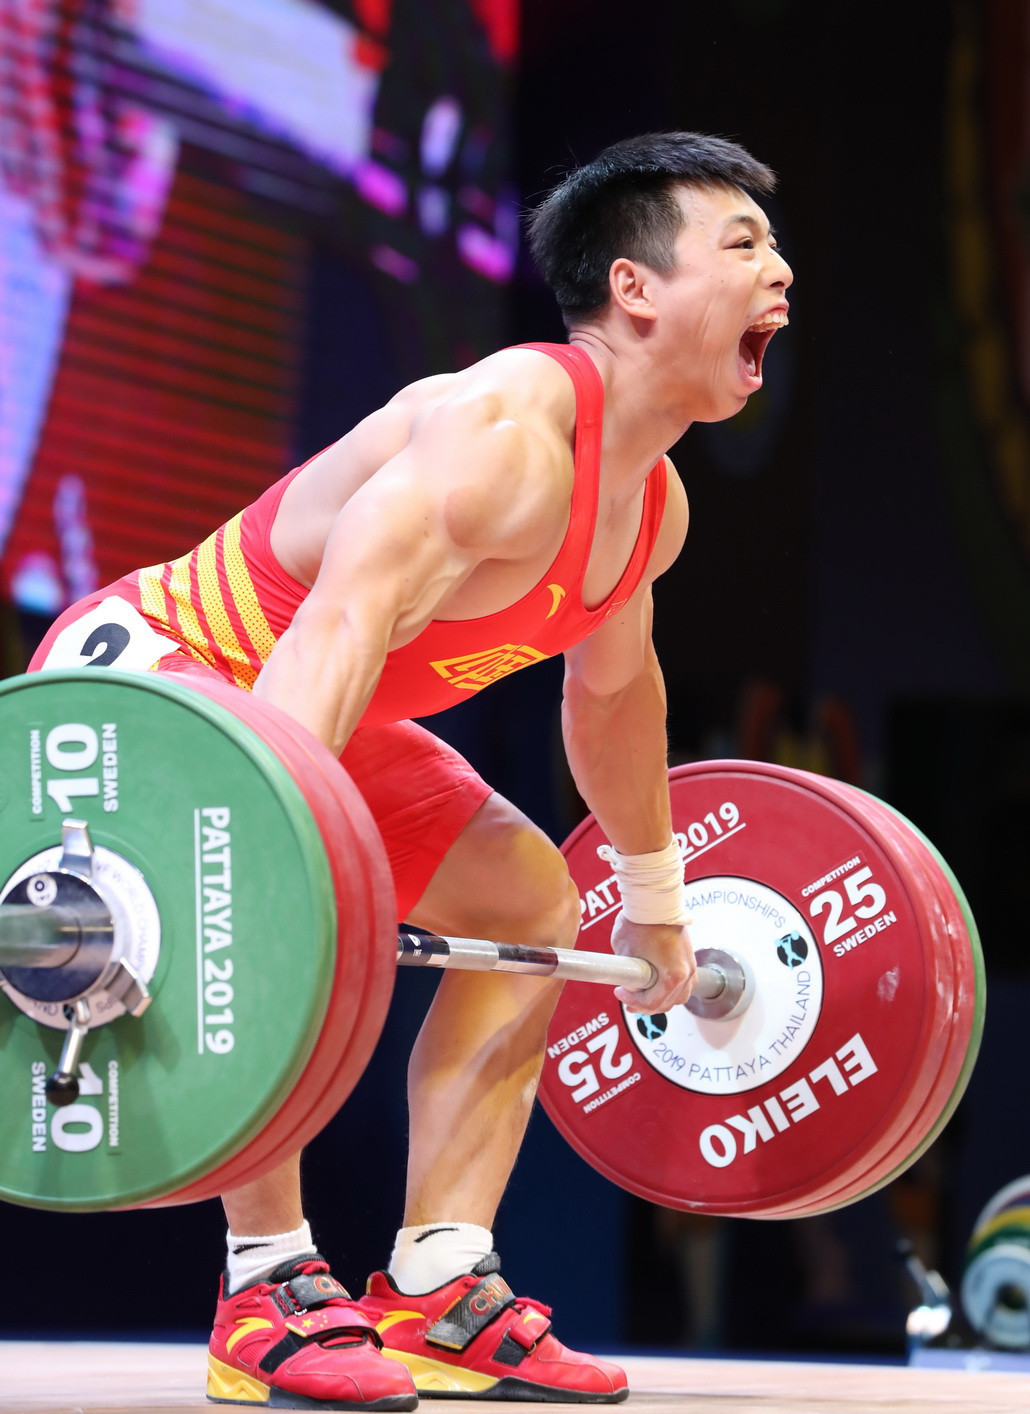 Defending champion Chen Lijun triumphed overall with 337kg, despite not winning either the snatch or the clean and jerk competitions ©IWF